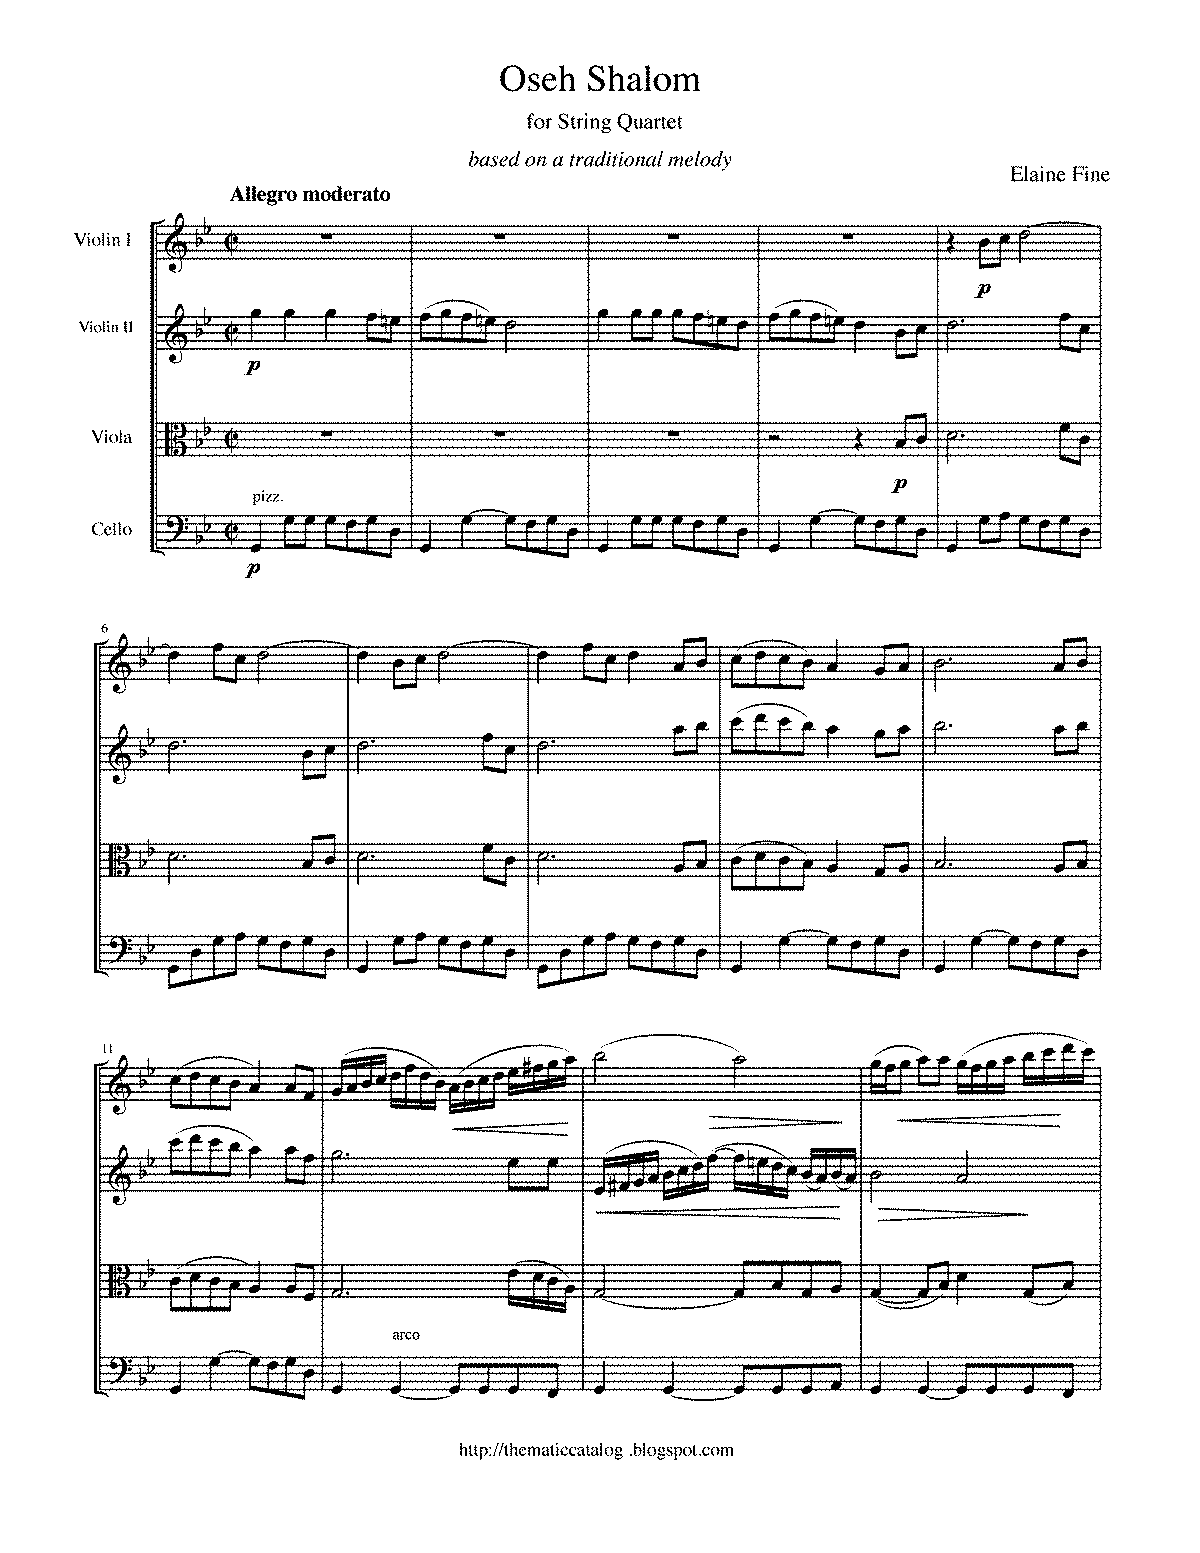 WIMA.549c-Fine Oseh Shalom for String Quartet.pdf